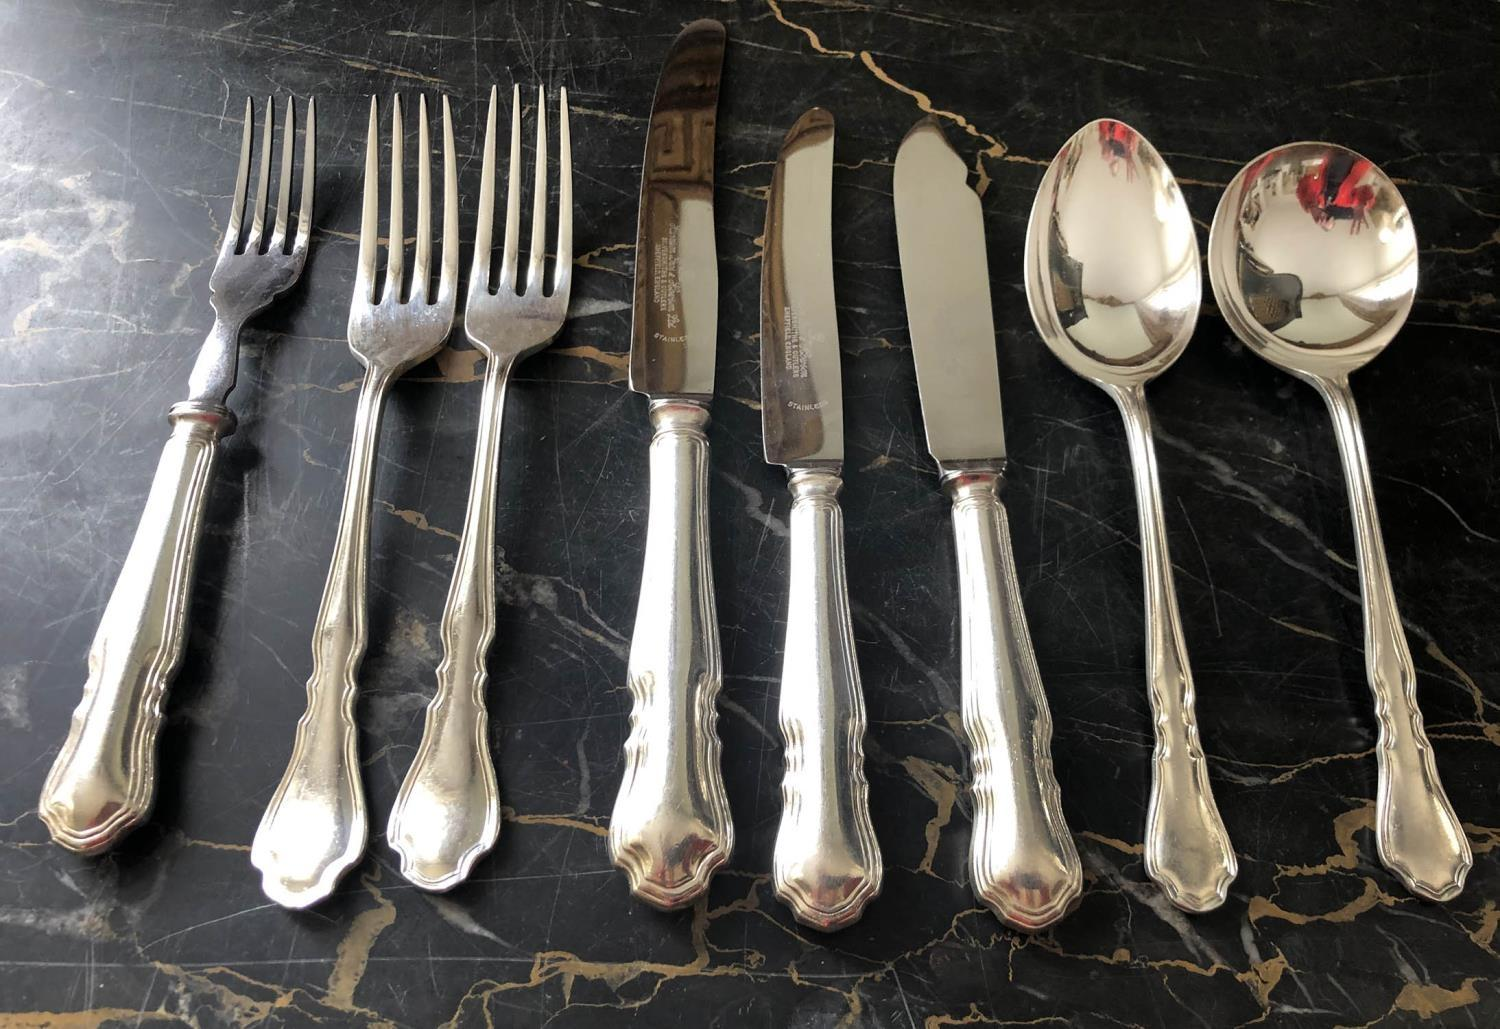 CANTEEN OF CUTLERY, silver plated 'Harrison and Hawson' 'Dubarry' pattern, nine place, eight piece